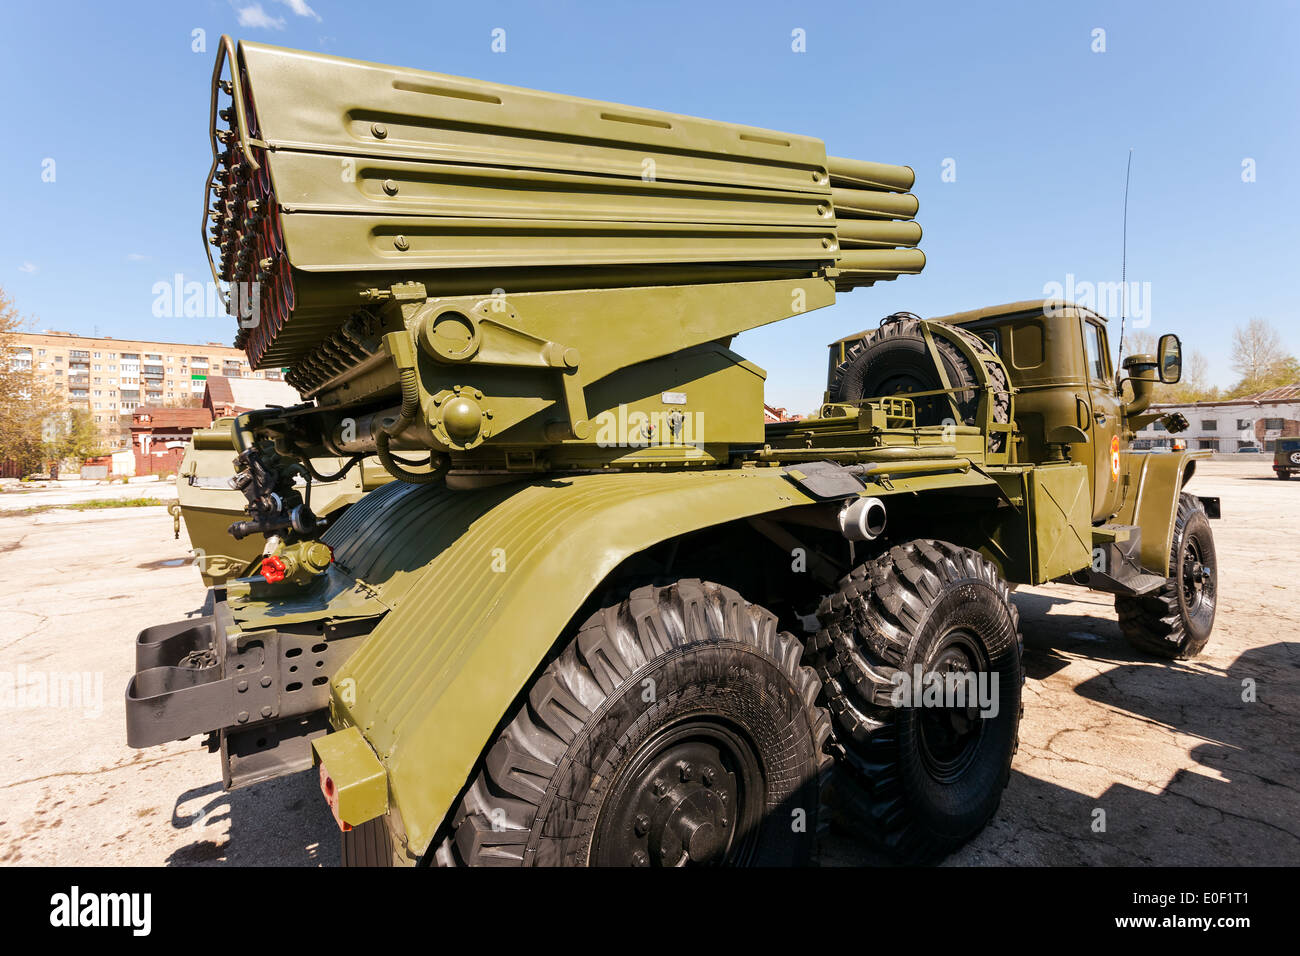 BM-21 Grad 122-mm Multiple Rocket Launcher on Ural-375D chassis - Stock Image